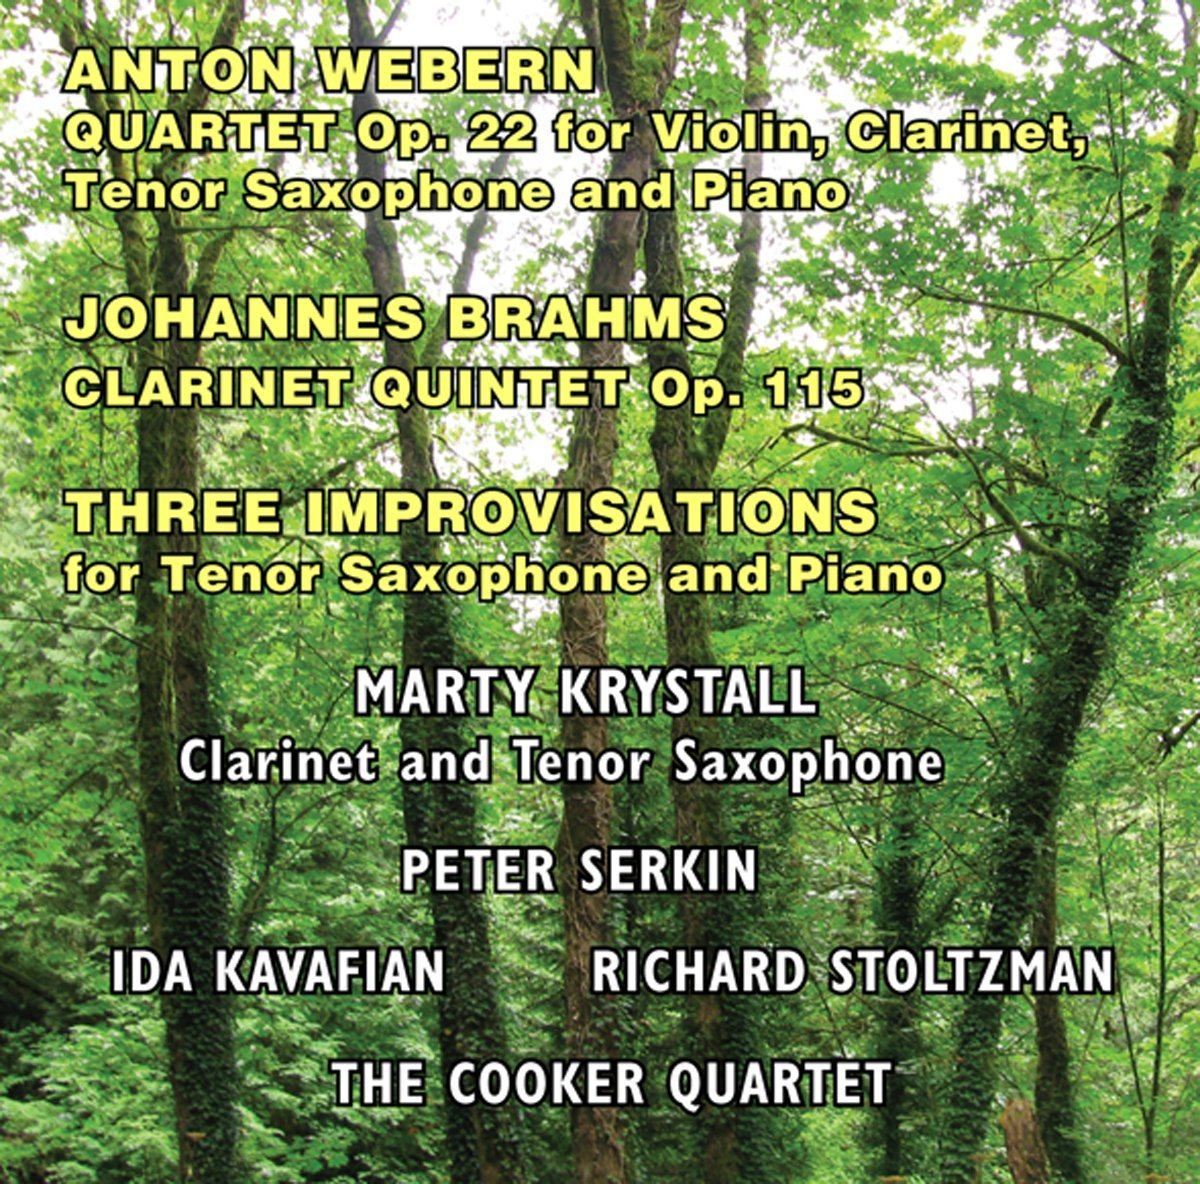 Marty Krystall / Peter Serkin - Anton Webern Quartet Op.22, Johannes Brahms Clarinet Quintet, Three Improvisations for Tenor Saxophone and Piano